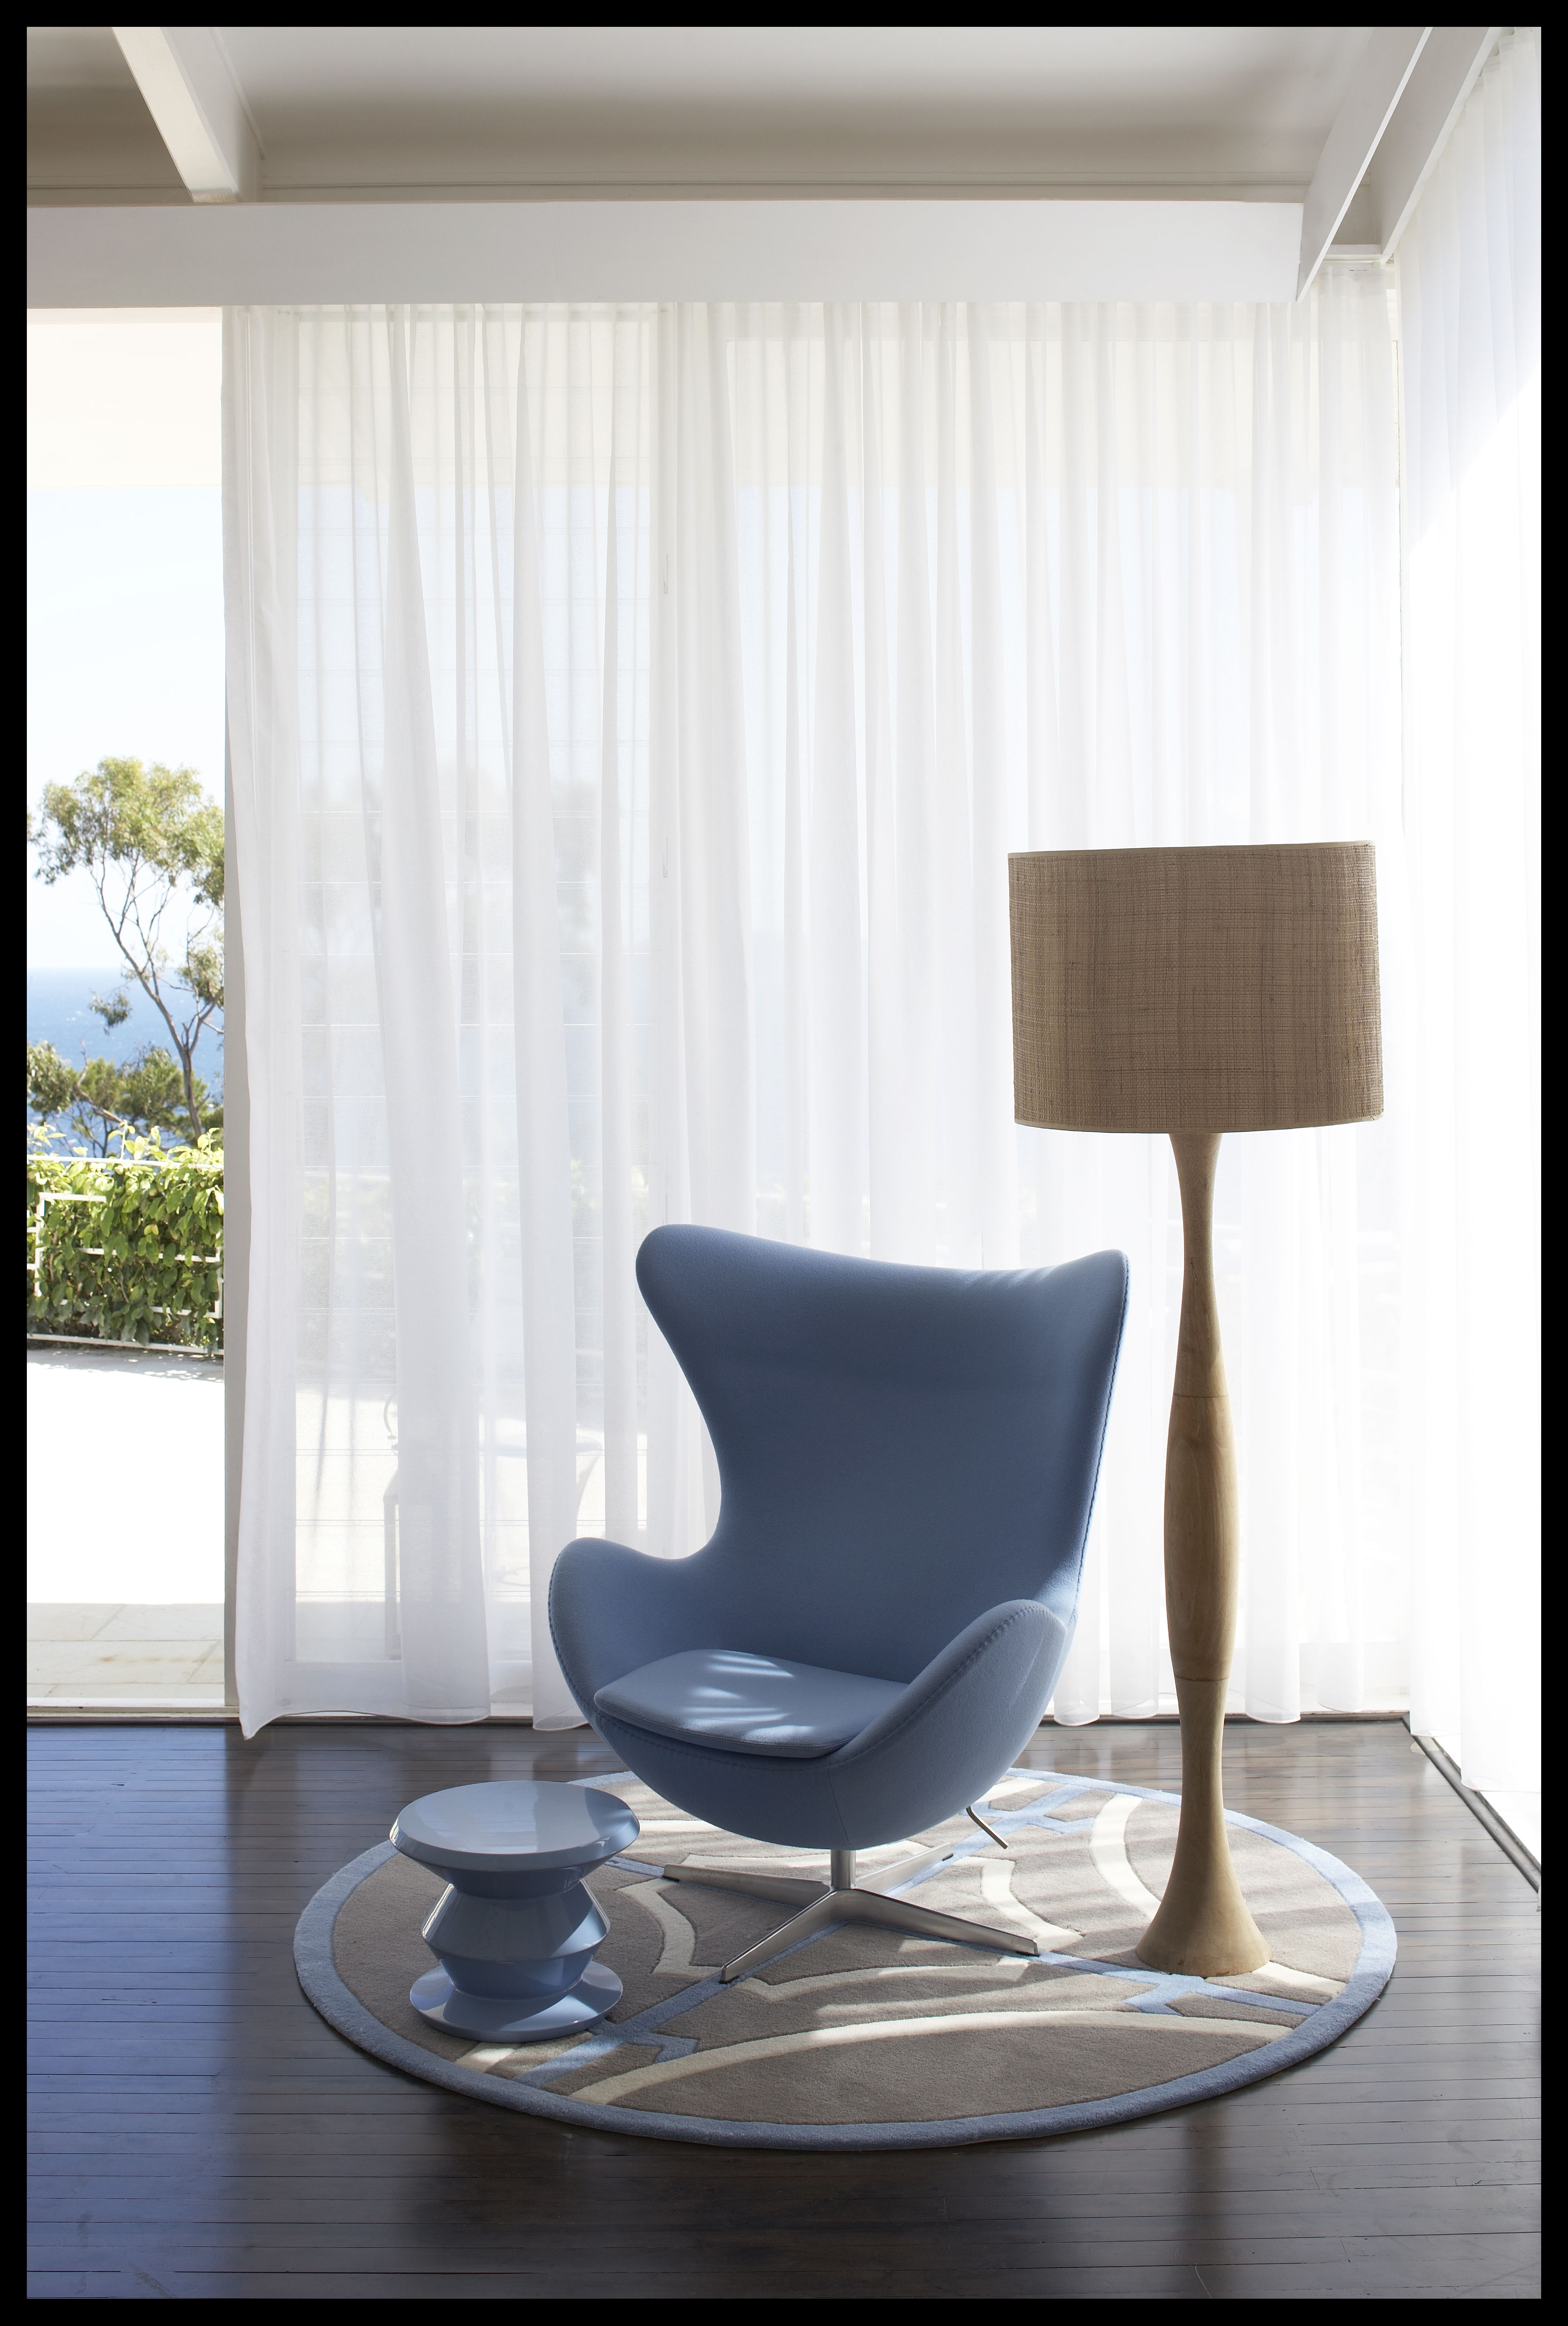 Mid Century Modernist Interior Design Ideas With Favorite Mid Century Modern Egg Tables (View 8 of 20)